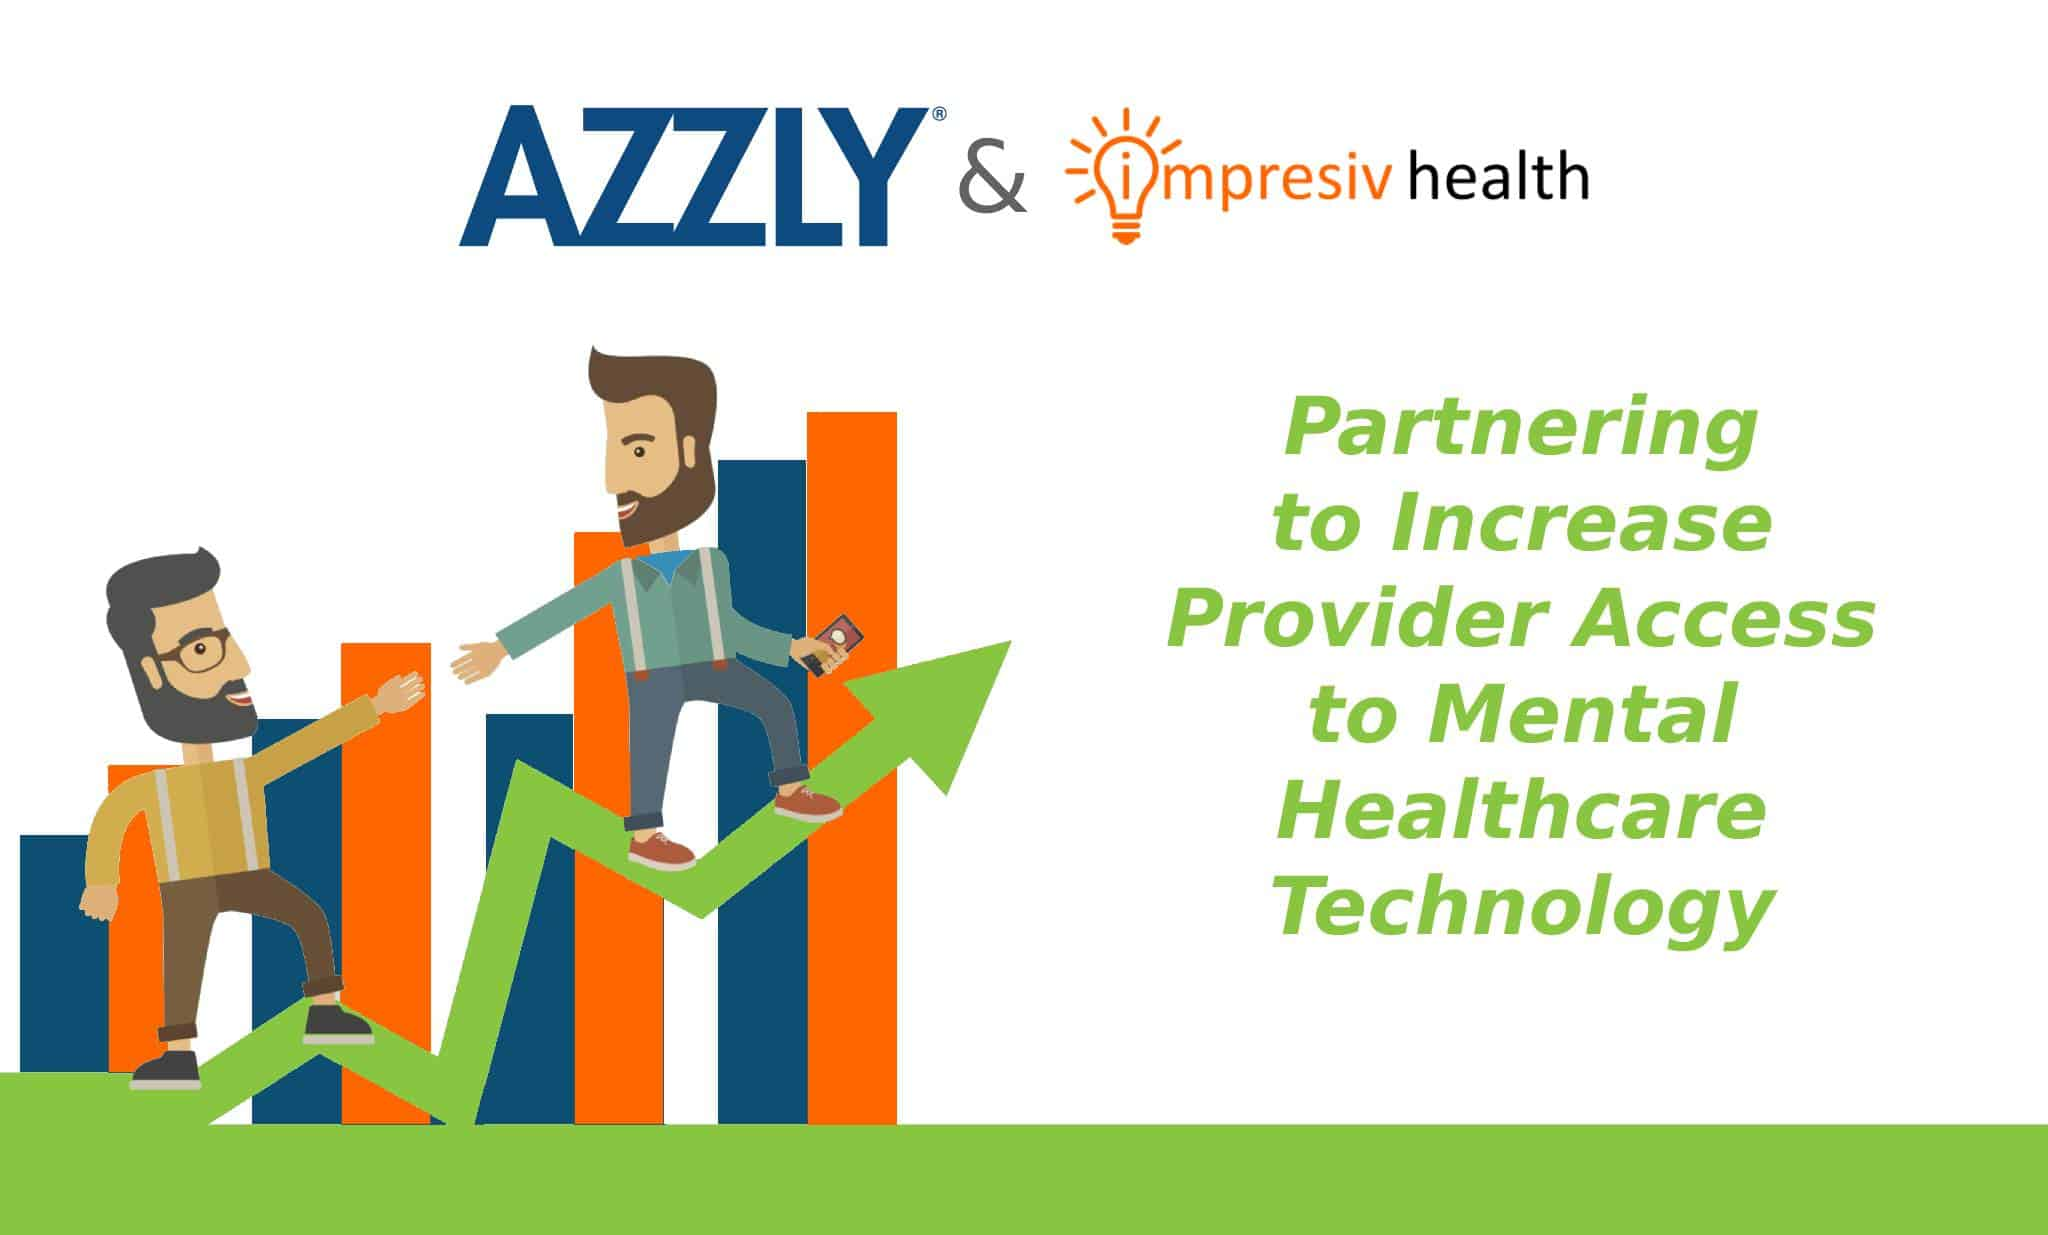 AZZLY® Partners With Impresiv Health® To Increase Provider Access To Mental Healthcare Technology